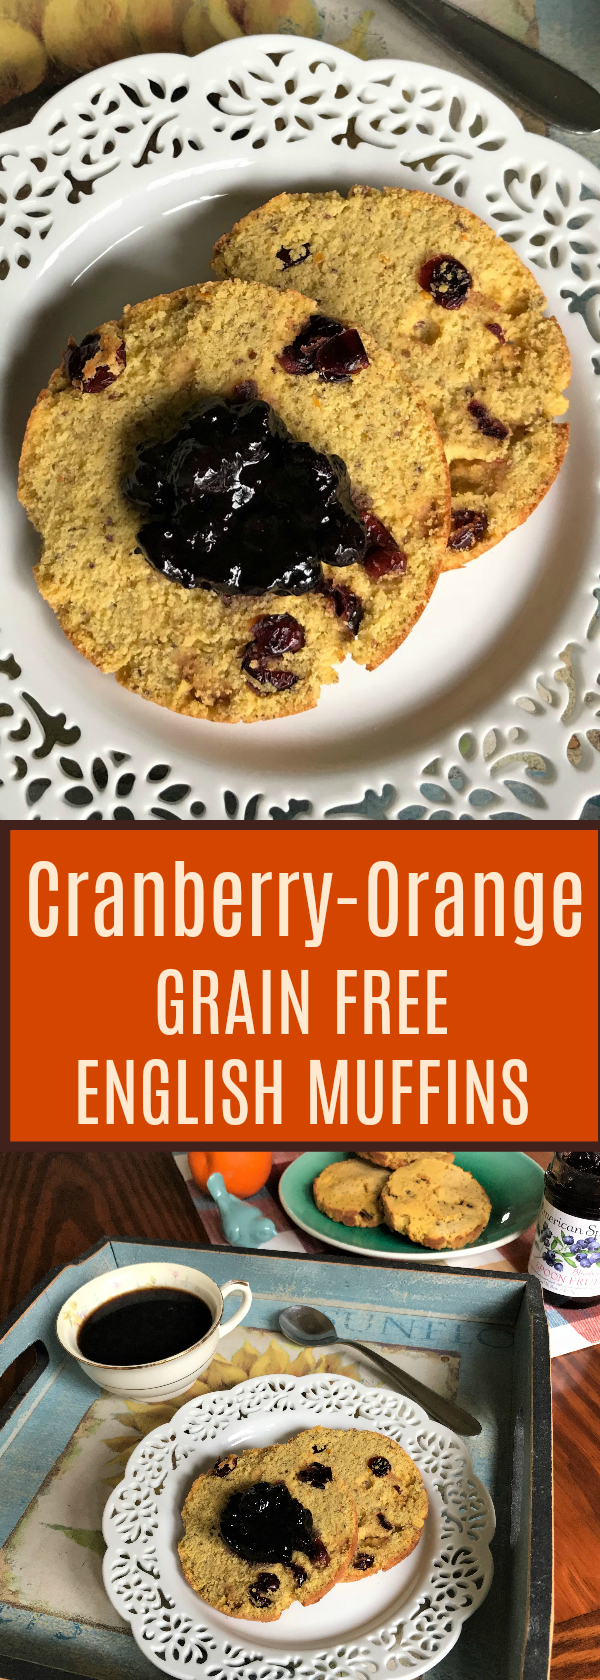 Cranberry-Orange Grain Free English Muffins